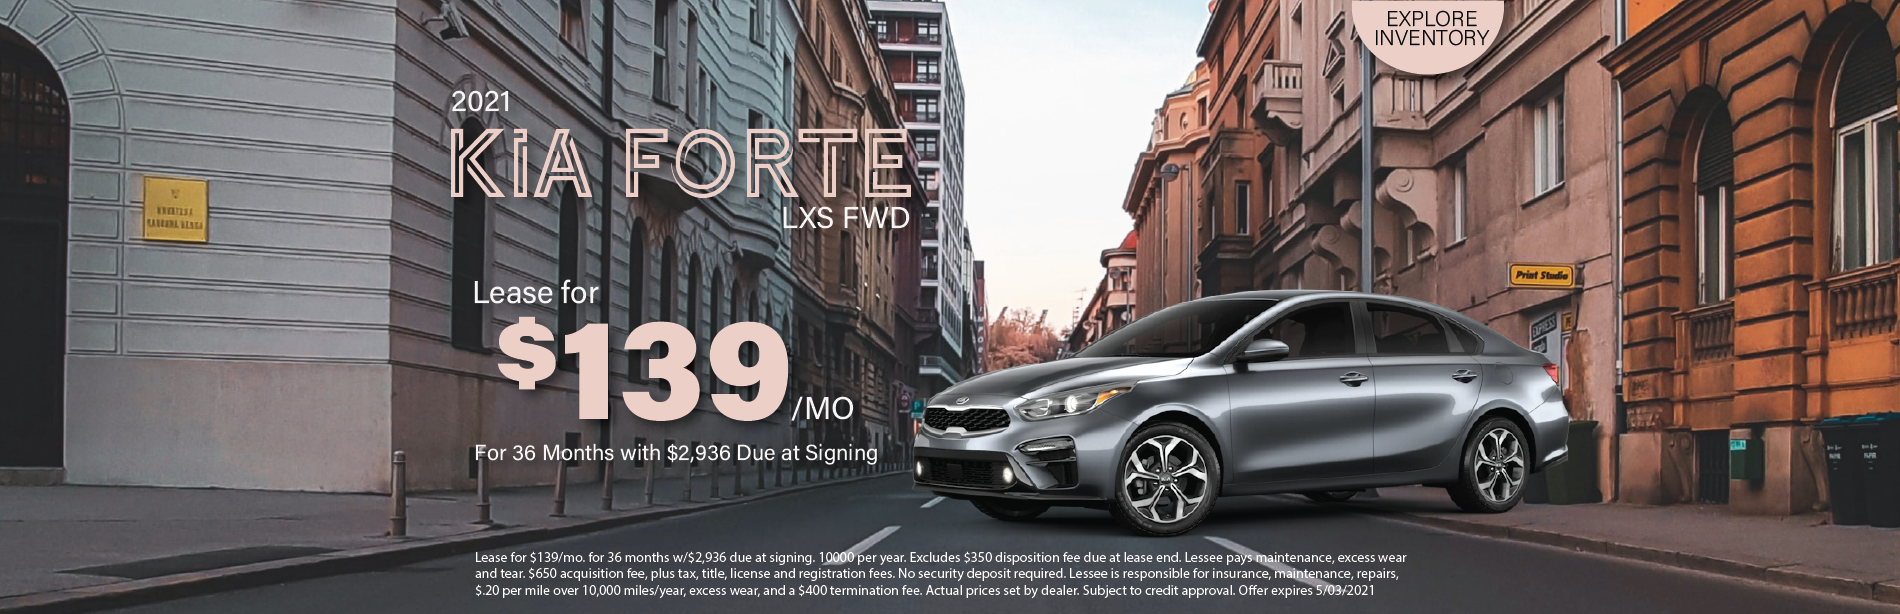 Lafontaine Kia Forte- April 2021